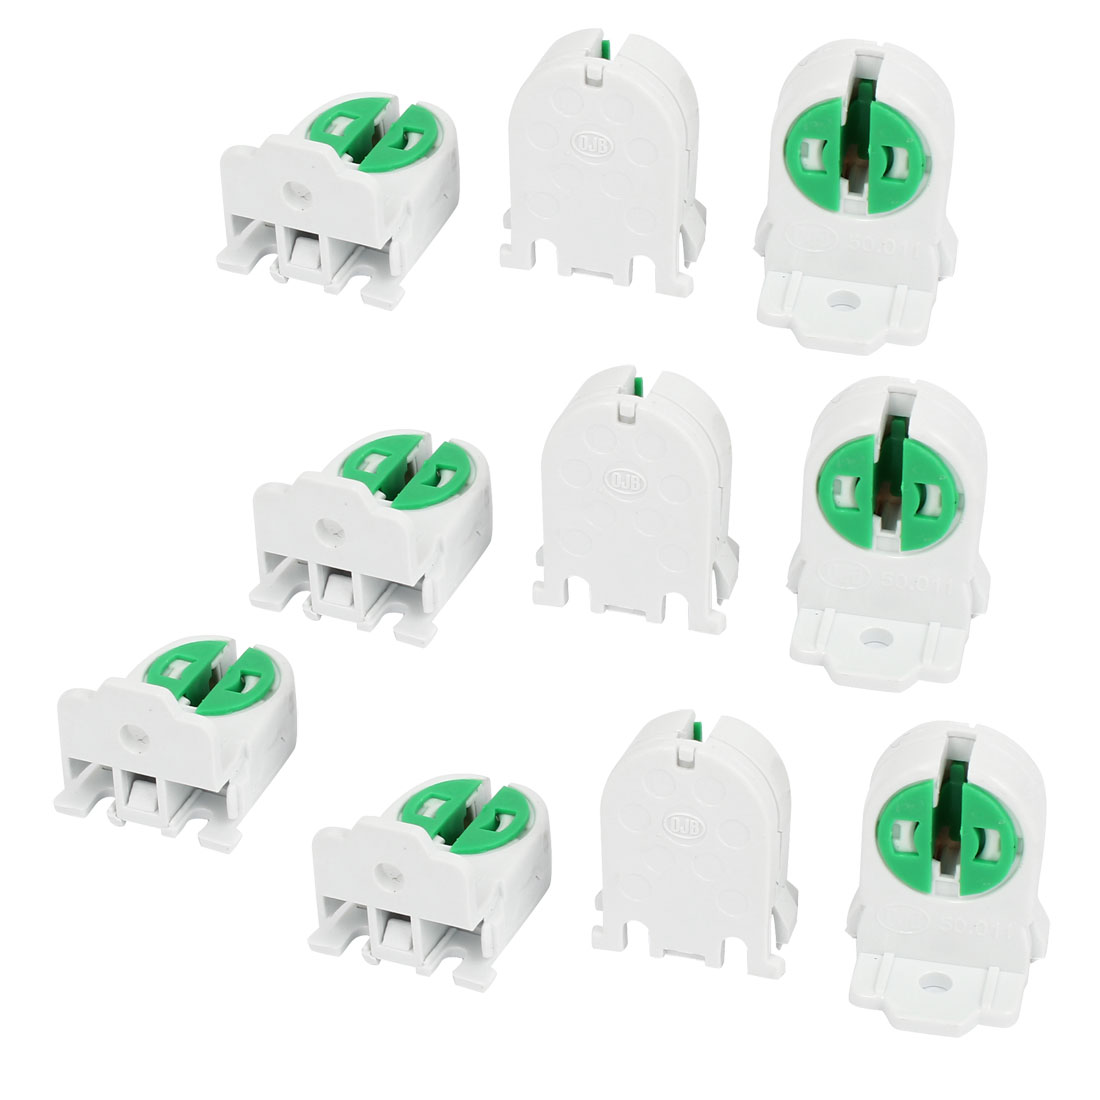 "10 Pcs 0.1"" Hole Dia T5 T4 Tube Light Fluorescent Lamp Holder Socket White Green"